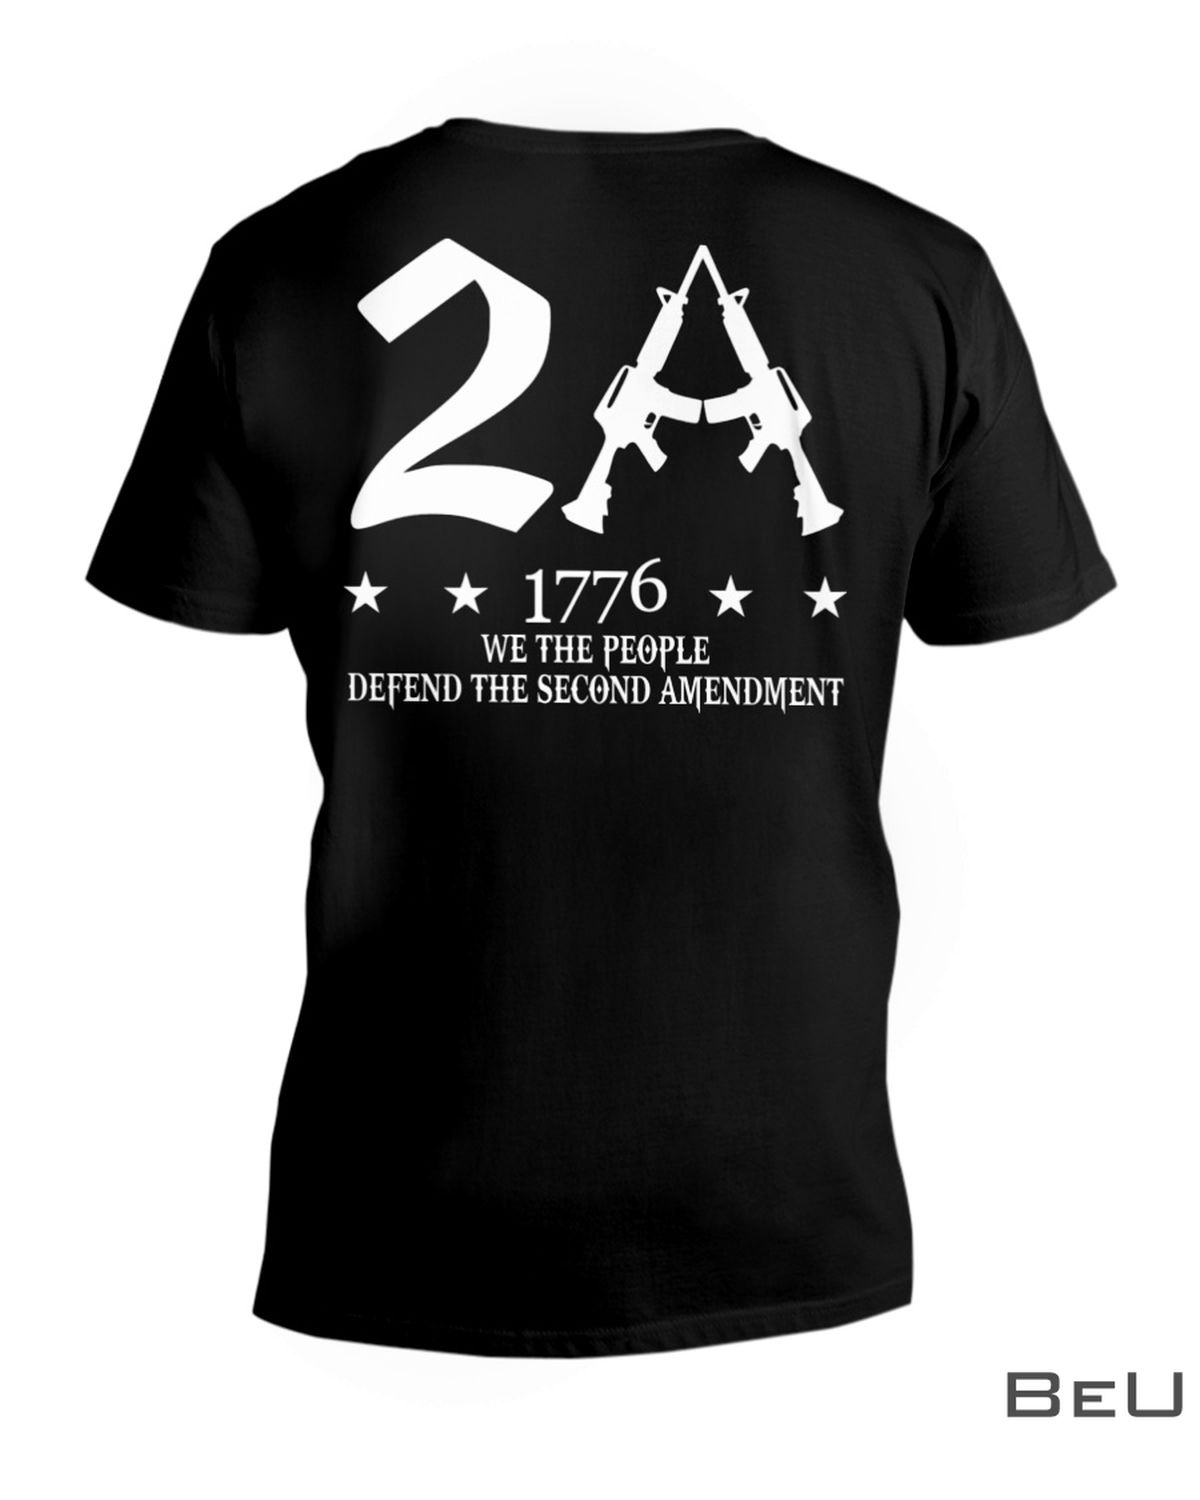 2A 1776 We The People Defend The Second Amendment Shirtx